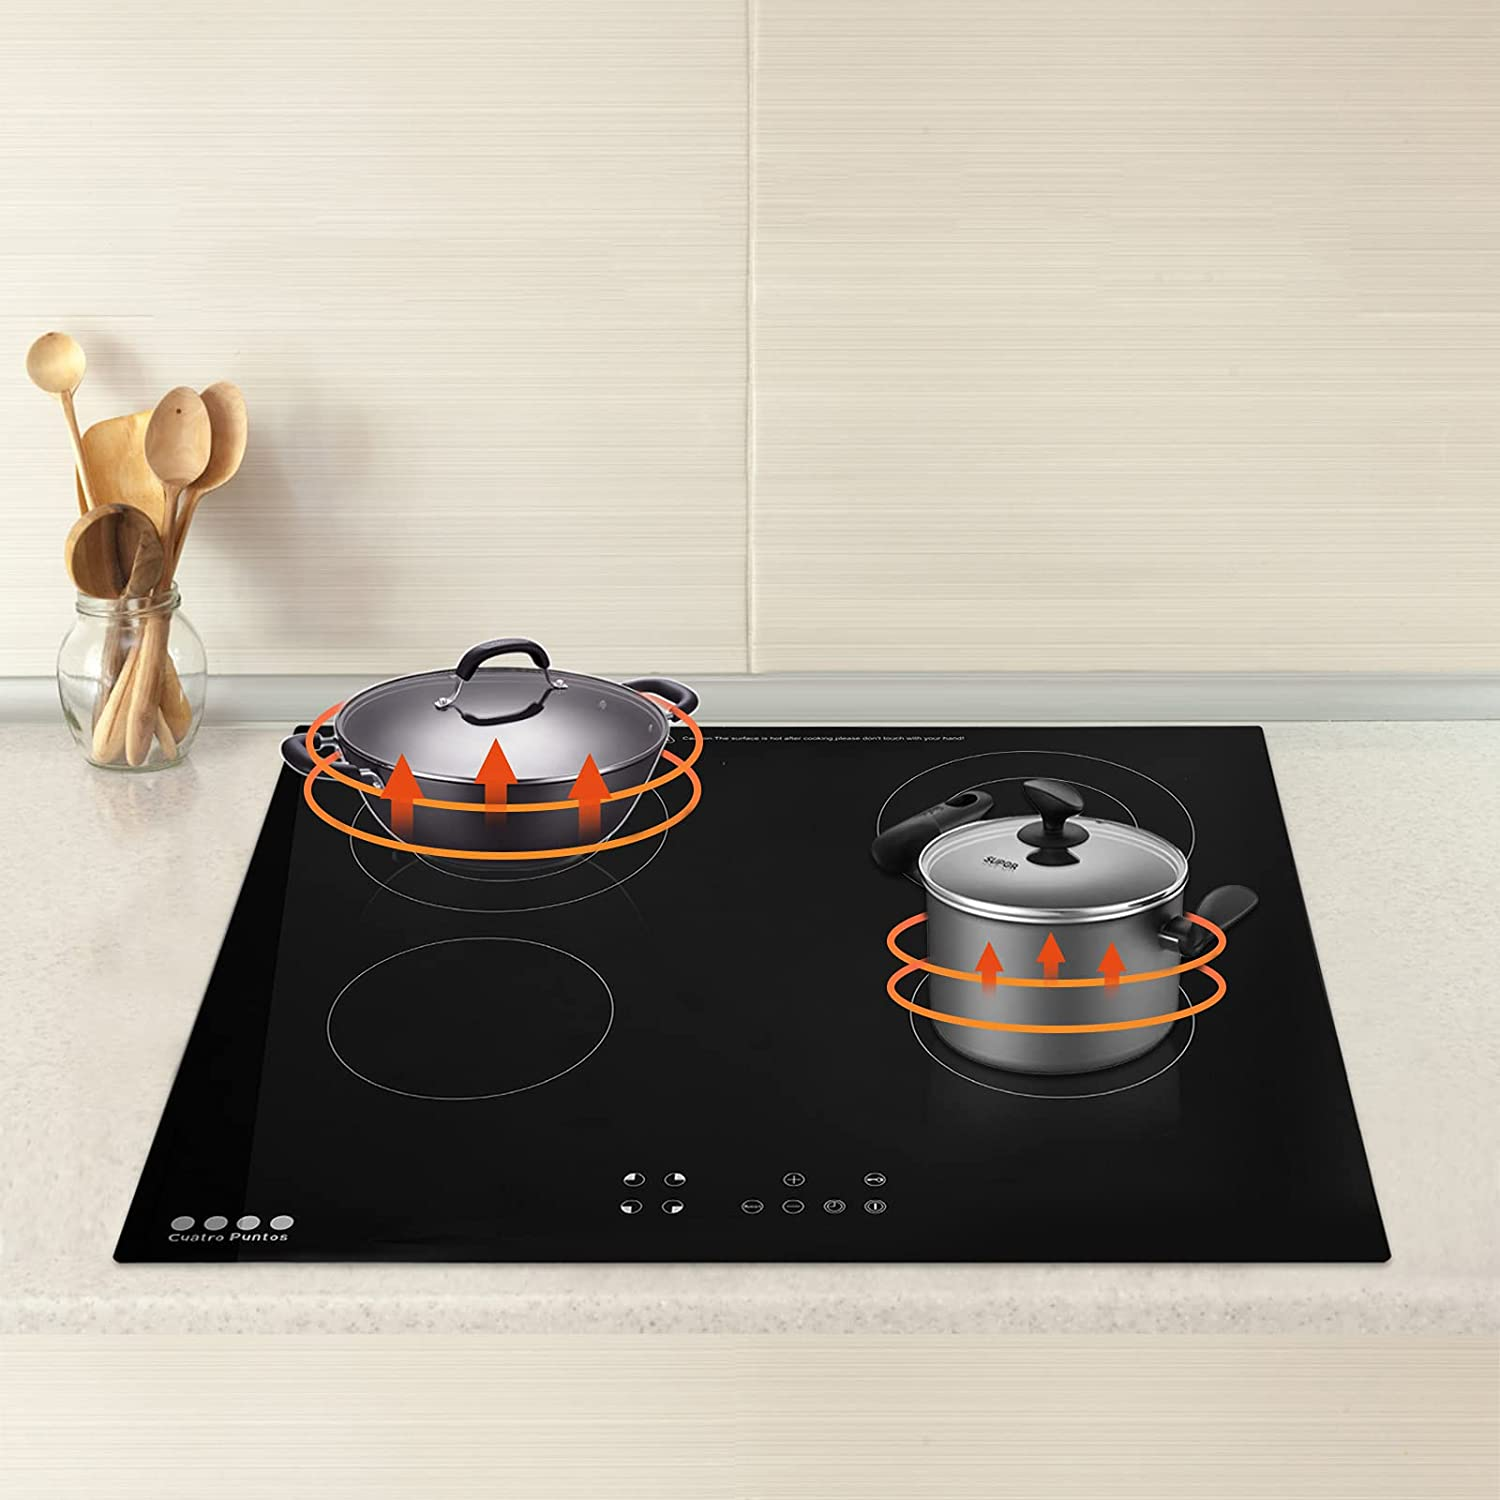 Younar 220V Portable Countertop Stove for Cooking, Infrared Electric Stove with Adjustable Temperature and Power, Hot Plate with LED Digital Display and 4 Burners, Electric Stove for Home Kitchen Camping